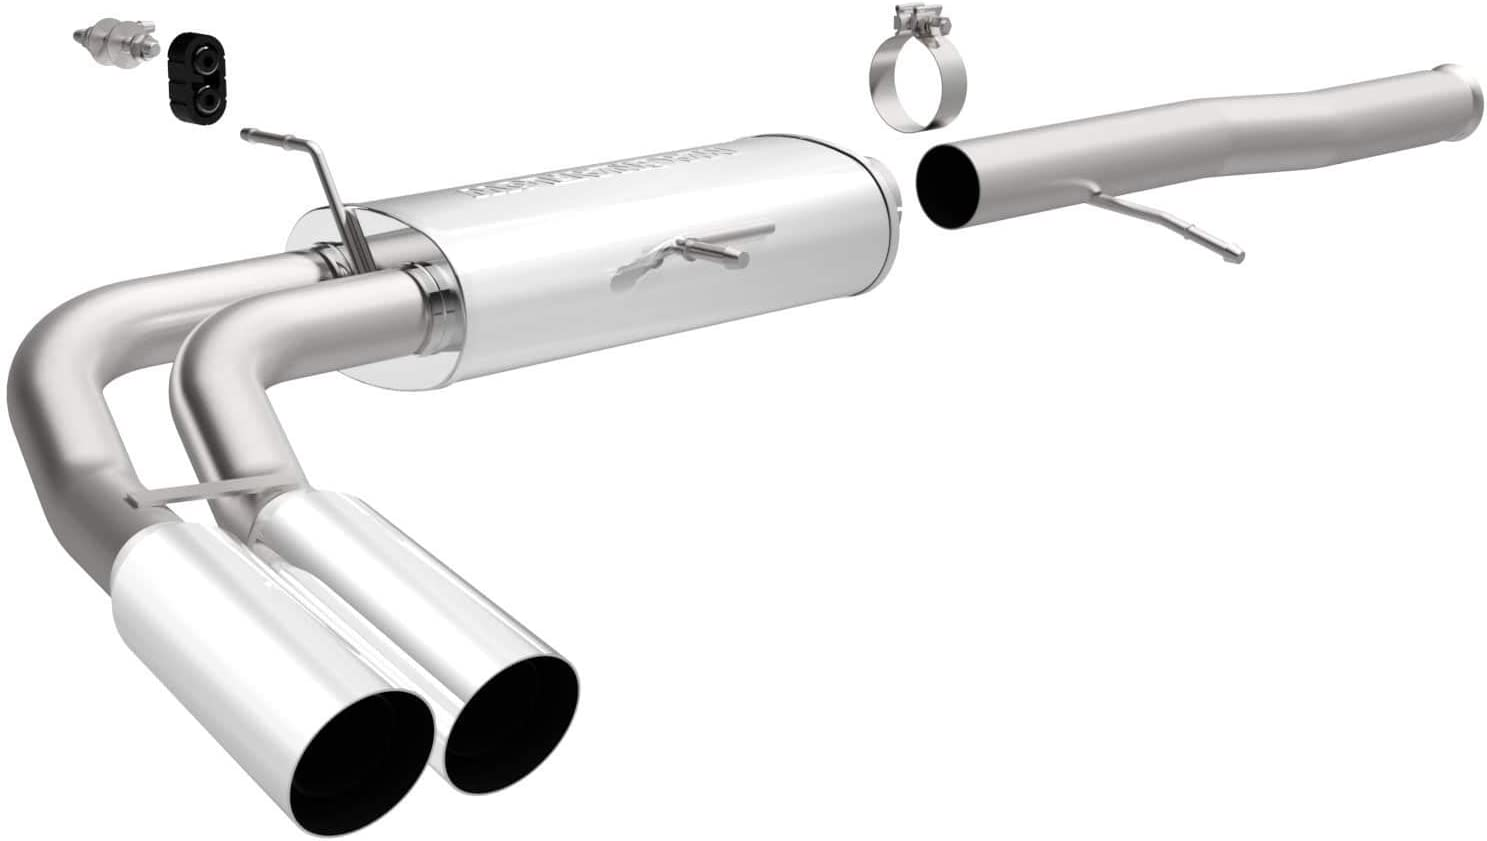 MagnaFlow 15564 Large Stainless Steel Performance Exhaust System Kit